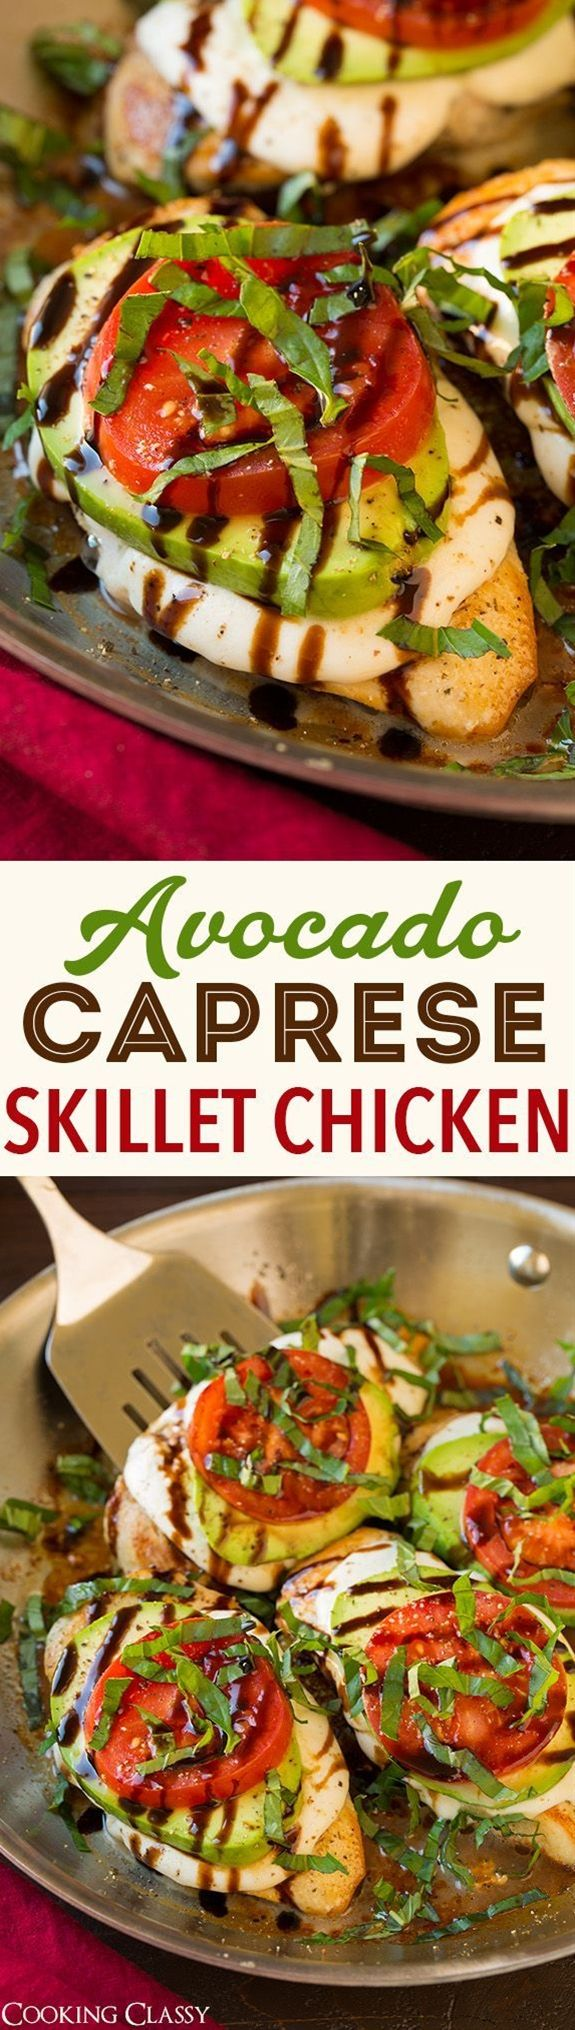 Avocado Caprese Skillet Chicken - SO GOOD!!! Ready under 25 minutes! Definitely adding this to the dinner rotation!\n\n Ingredients\n\n  2 (10 - 11 oz each) boneless skinless chicken breasts, butterflied and halved\n 1/2 tsp garlic powder\n 1/2 tsp onion powder\n 1/2 tsp Italian seasoning\n Salt and freshly ground black pepper\n 2 Tbsp olive oil\n 6 oz fresh mozzarella, cut into 8 slices\n 4 avocado slices (from a firm but ripe large avocado)\n 2 medium vine ripened tomatoes, sliced\n 3 Tbsp…